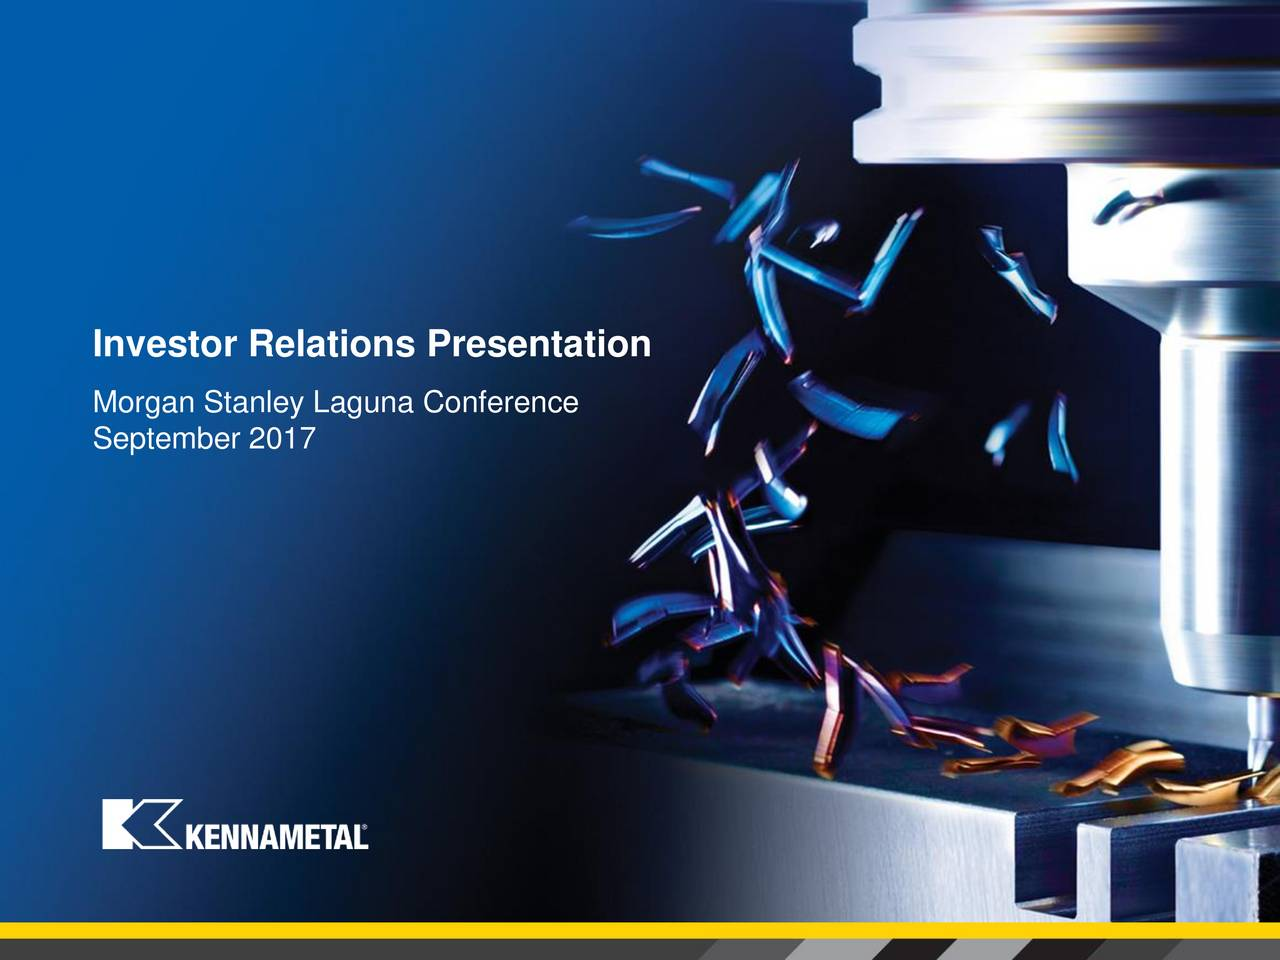 Morgan Stanley Investor Relations >> Kennametal (KMT) Presents At Morgan Stanley 5th Annual Laguna Conference - Slideshow ...